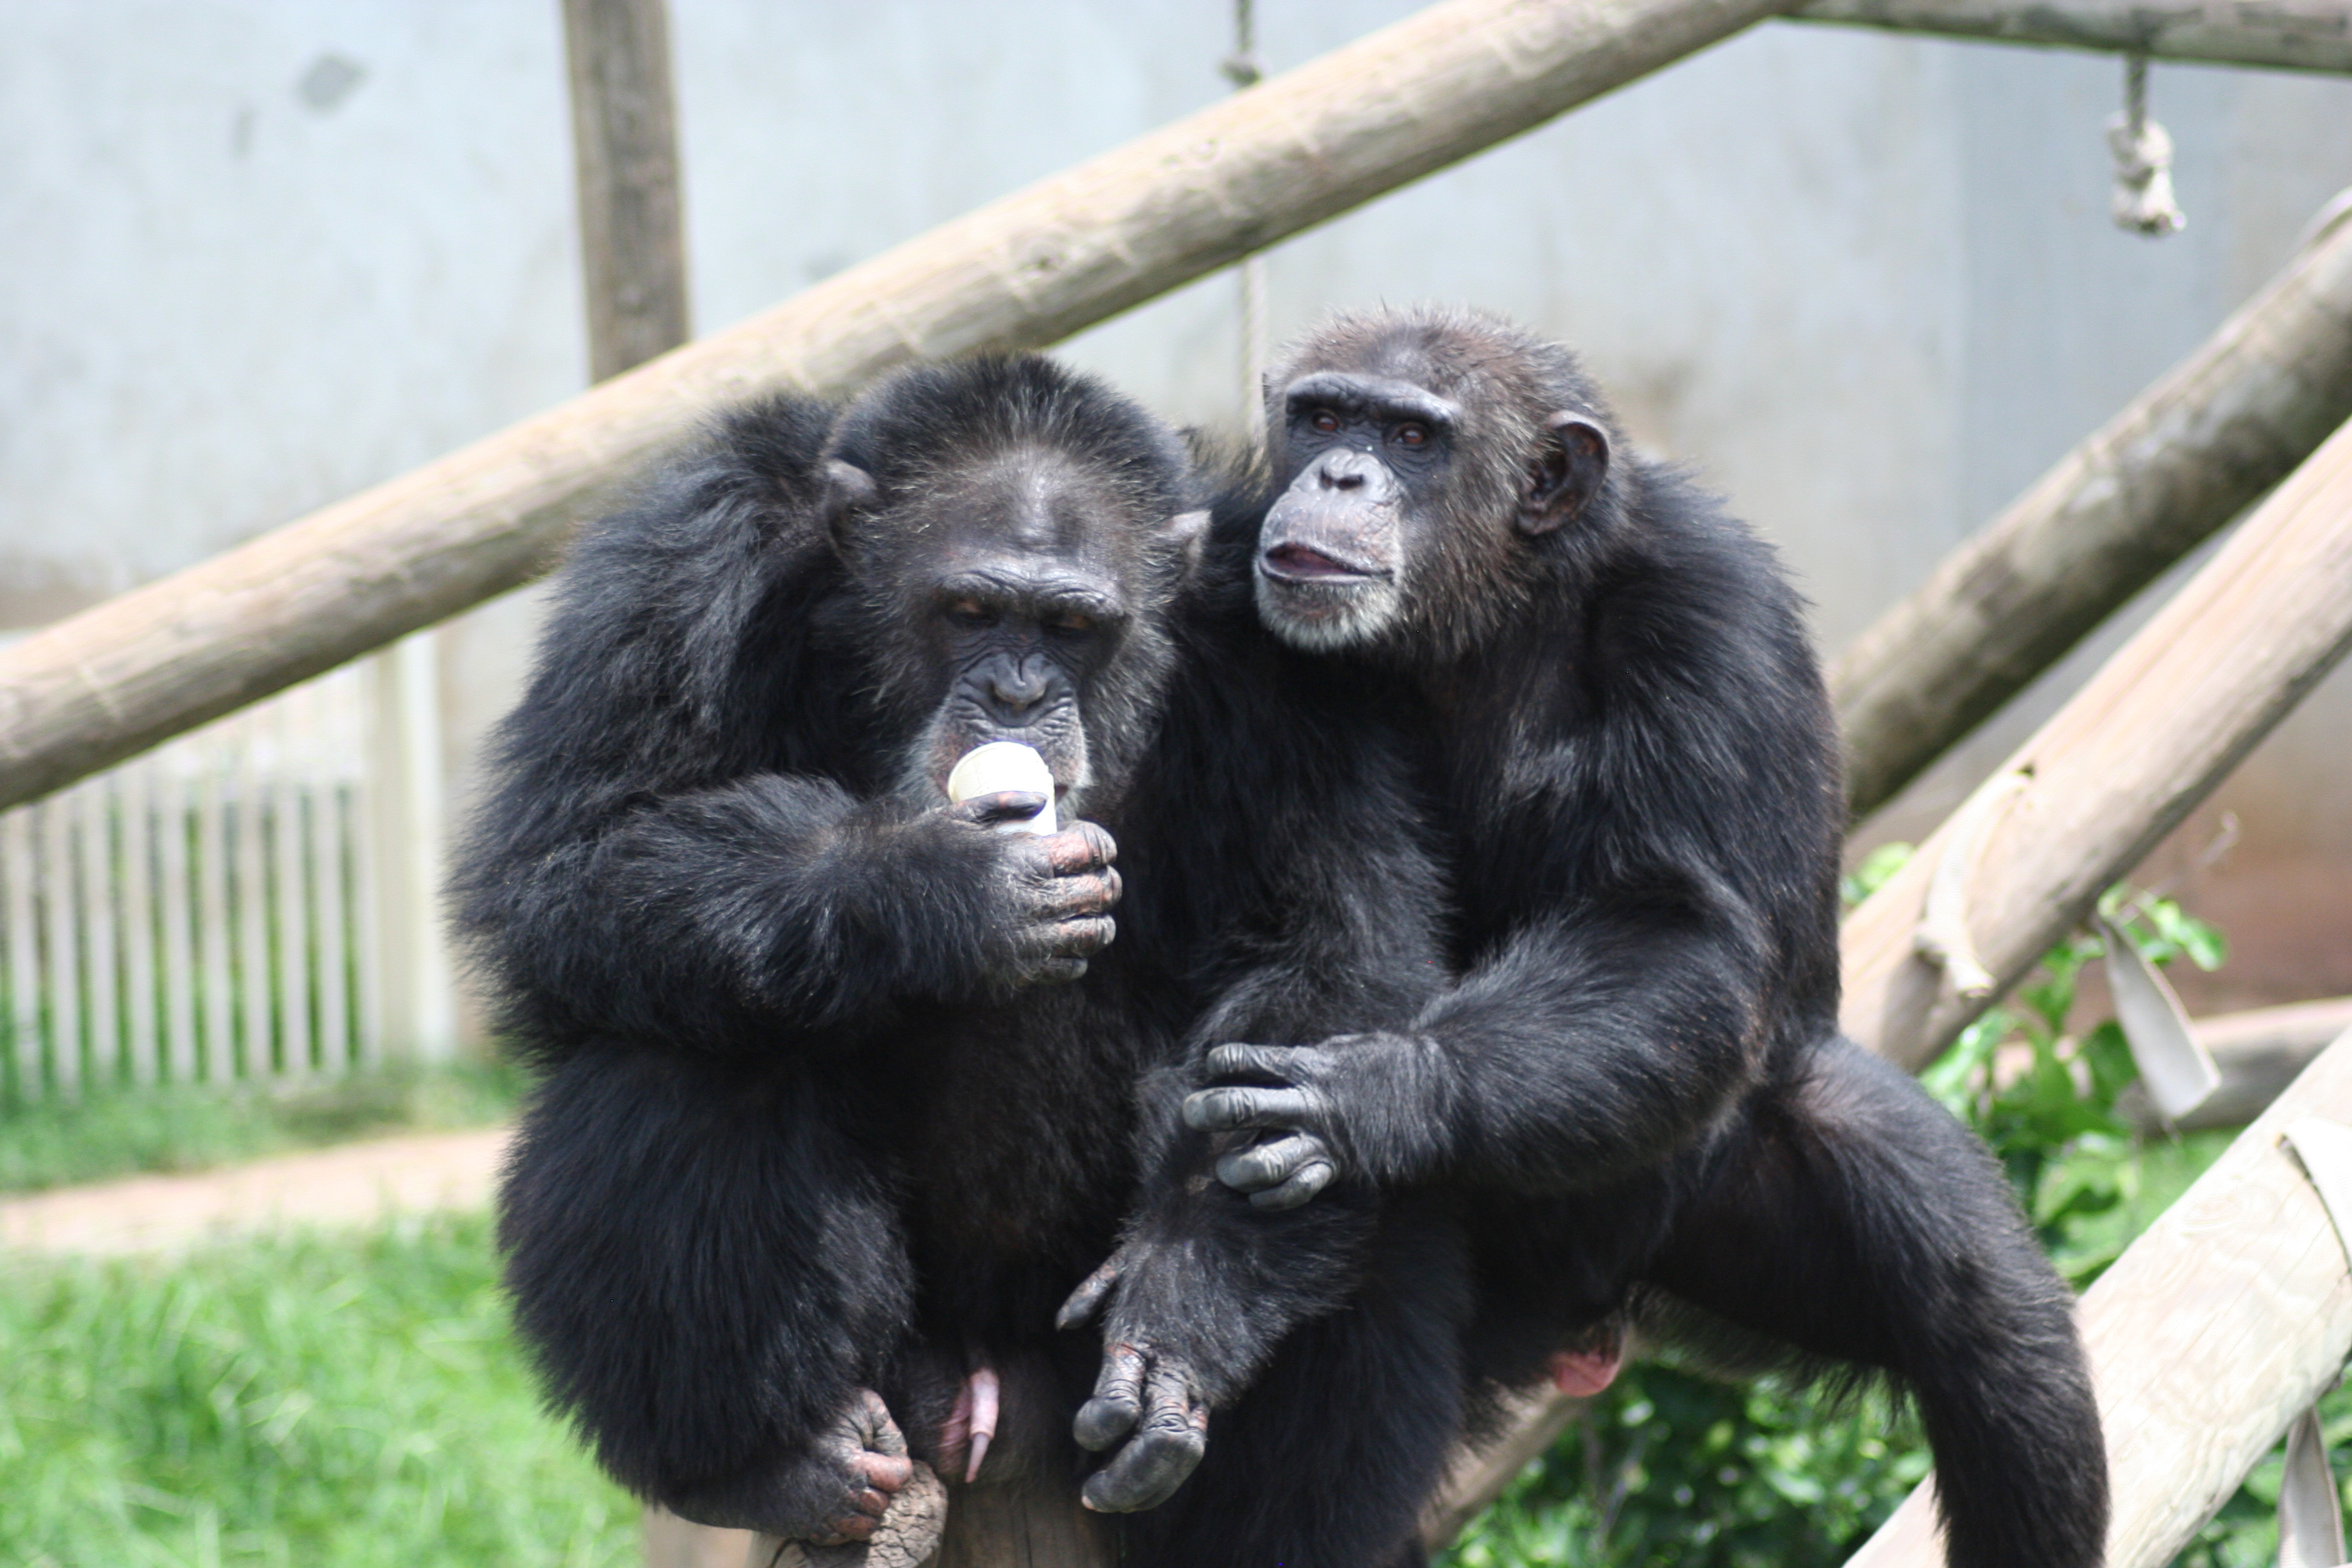 Two chimpanzees sit next to each other